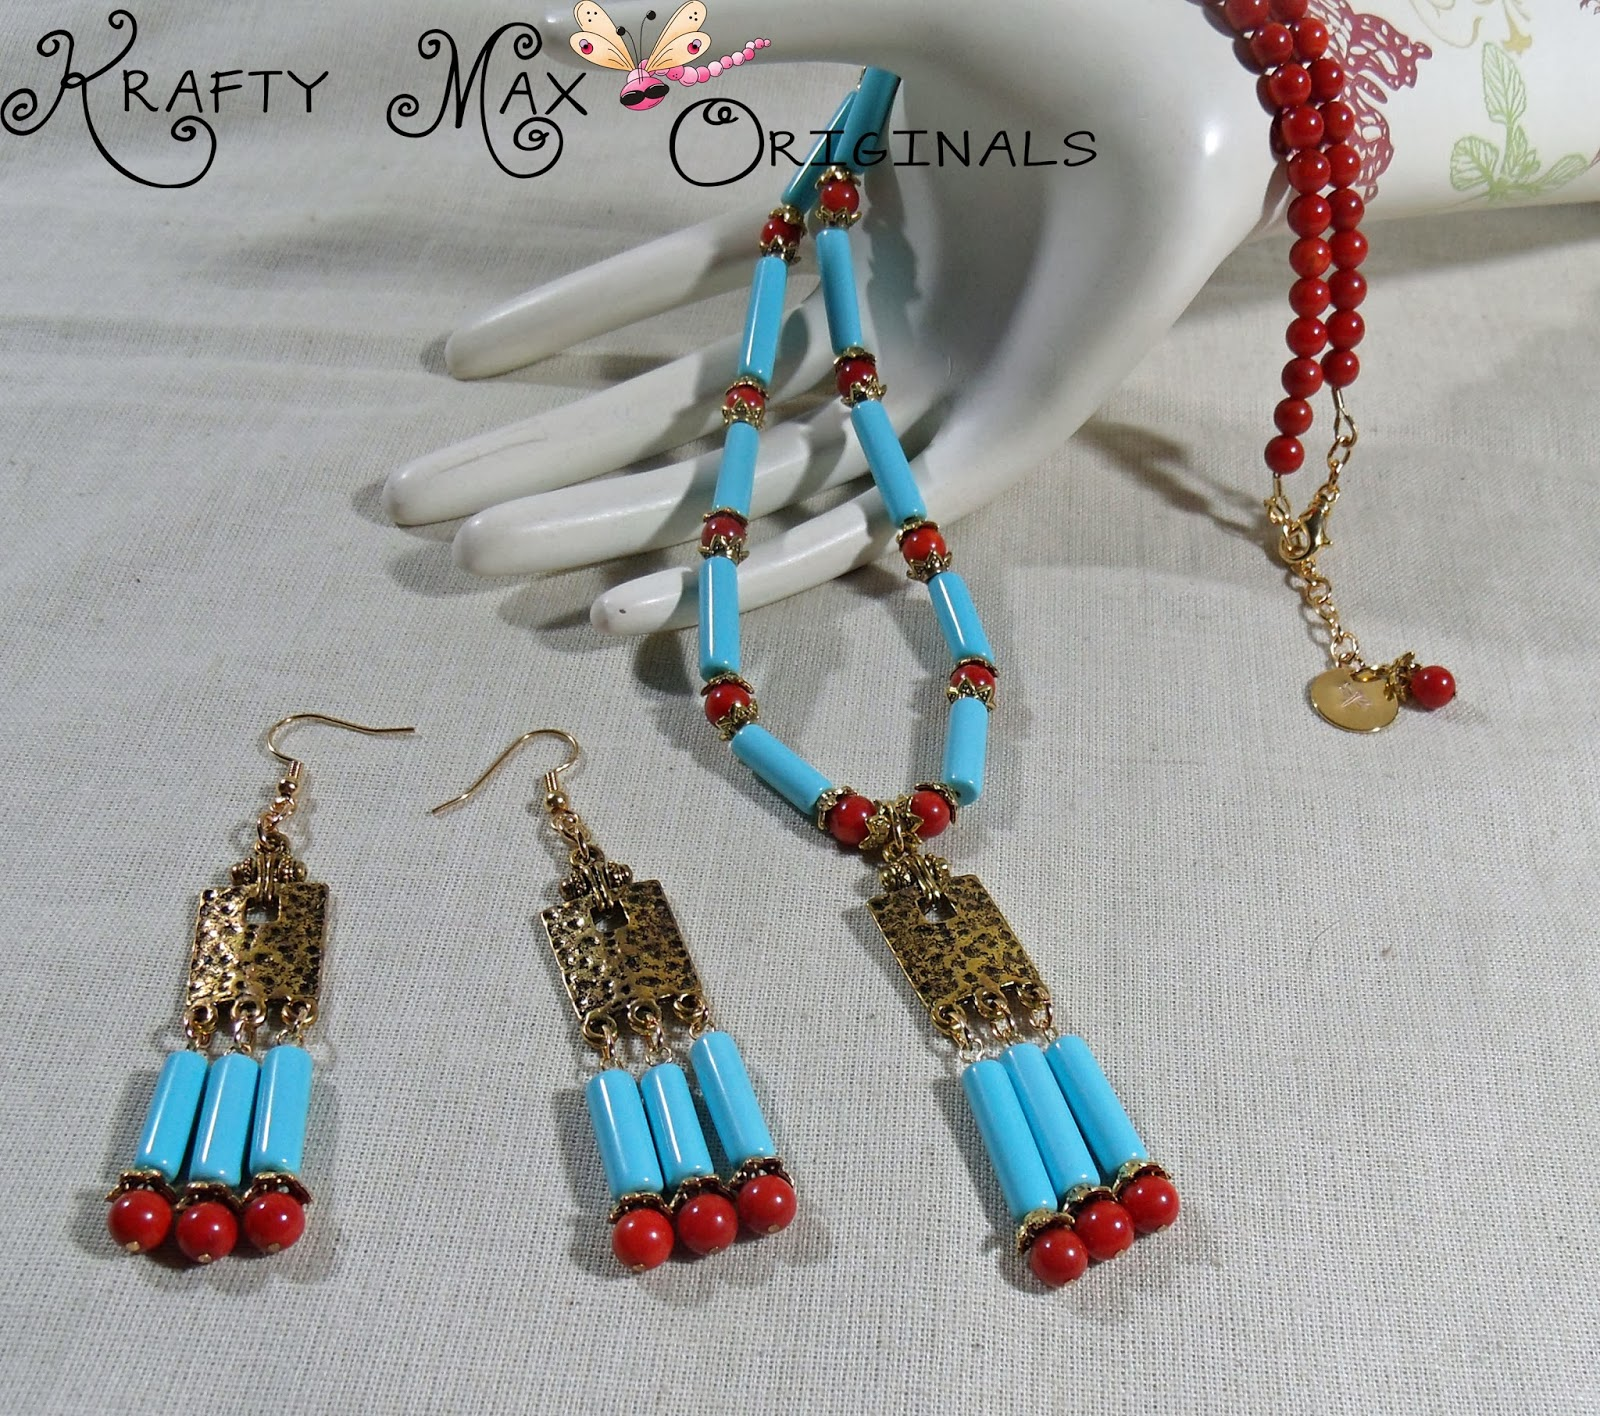 http://www.lajuliet.com/index.php/2013-01-04-15-21-51/ad/gemstone,92/exclusive-red-coral-and-turquoise-gold-plated-necklace-set-a-krafty-max-original-design,200